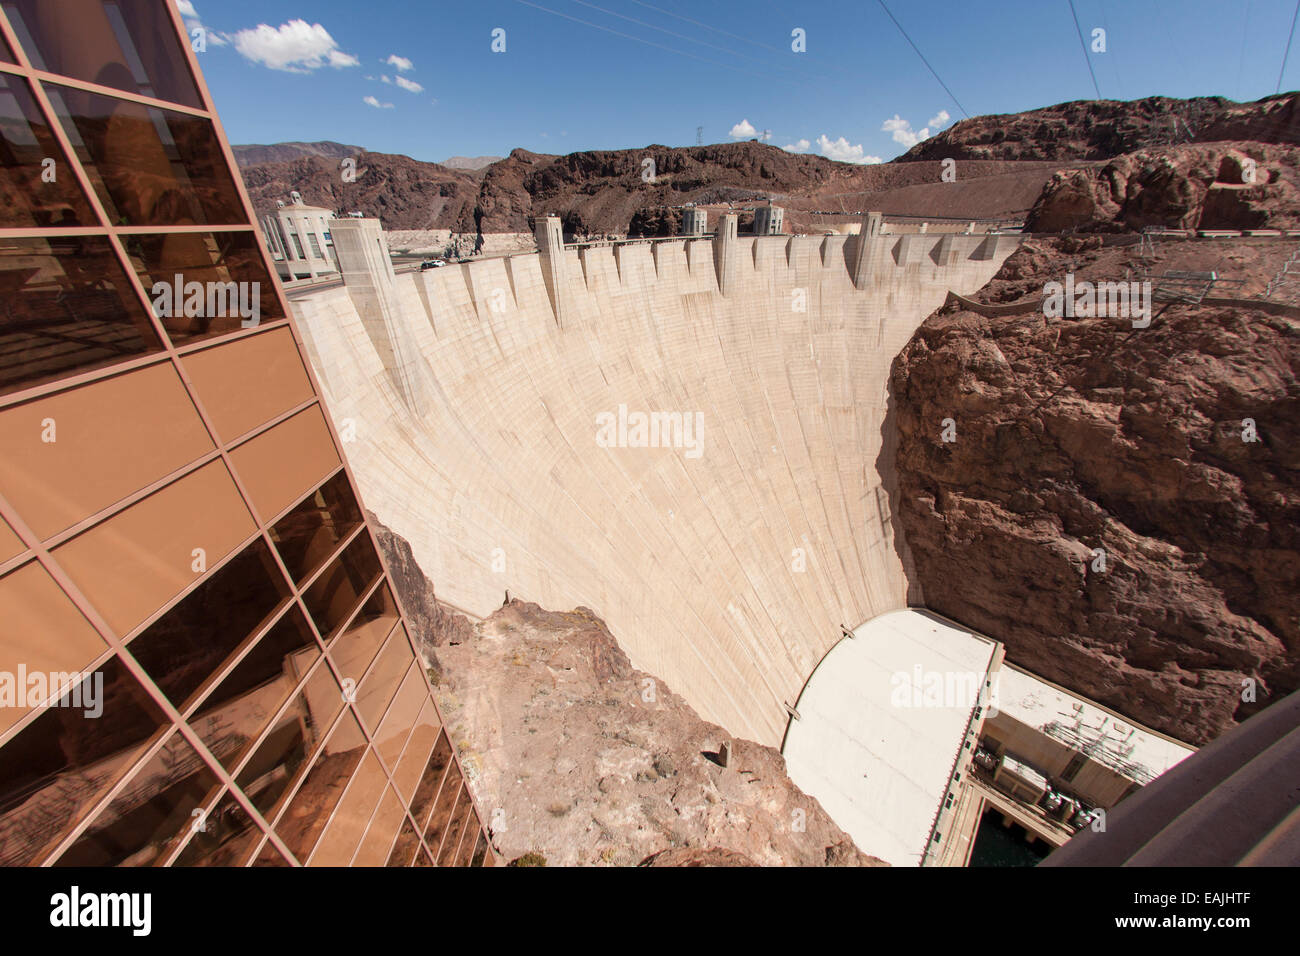 Hoover Dam from the visitor center. - Stock Image